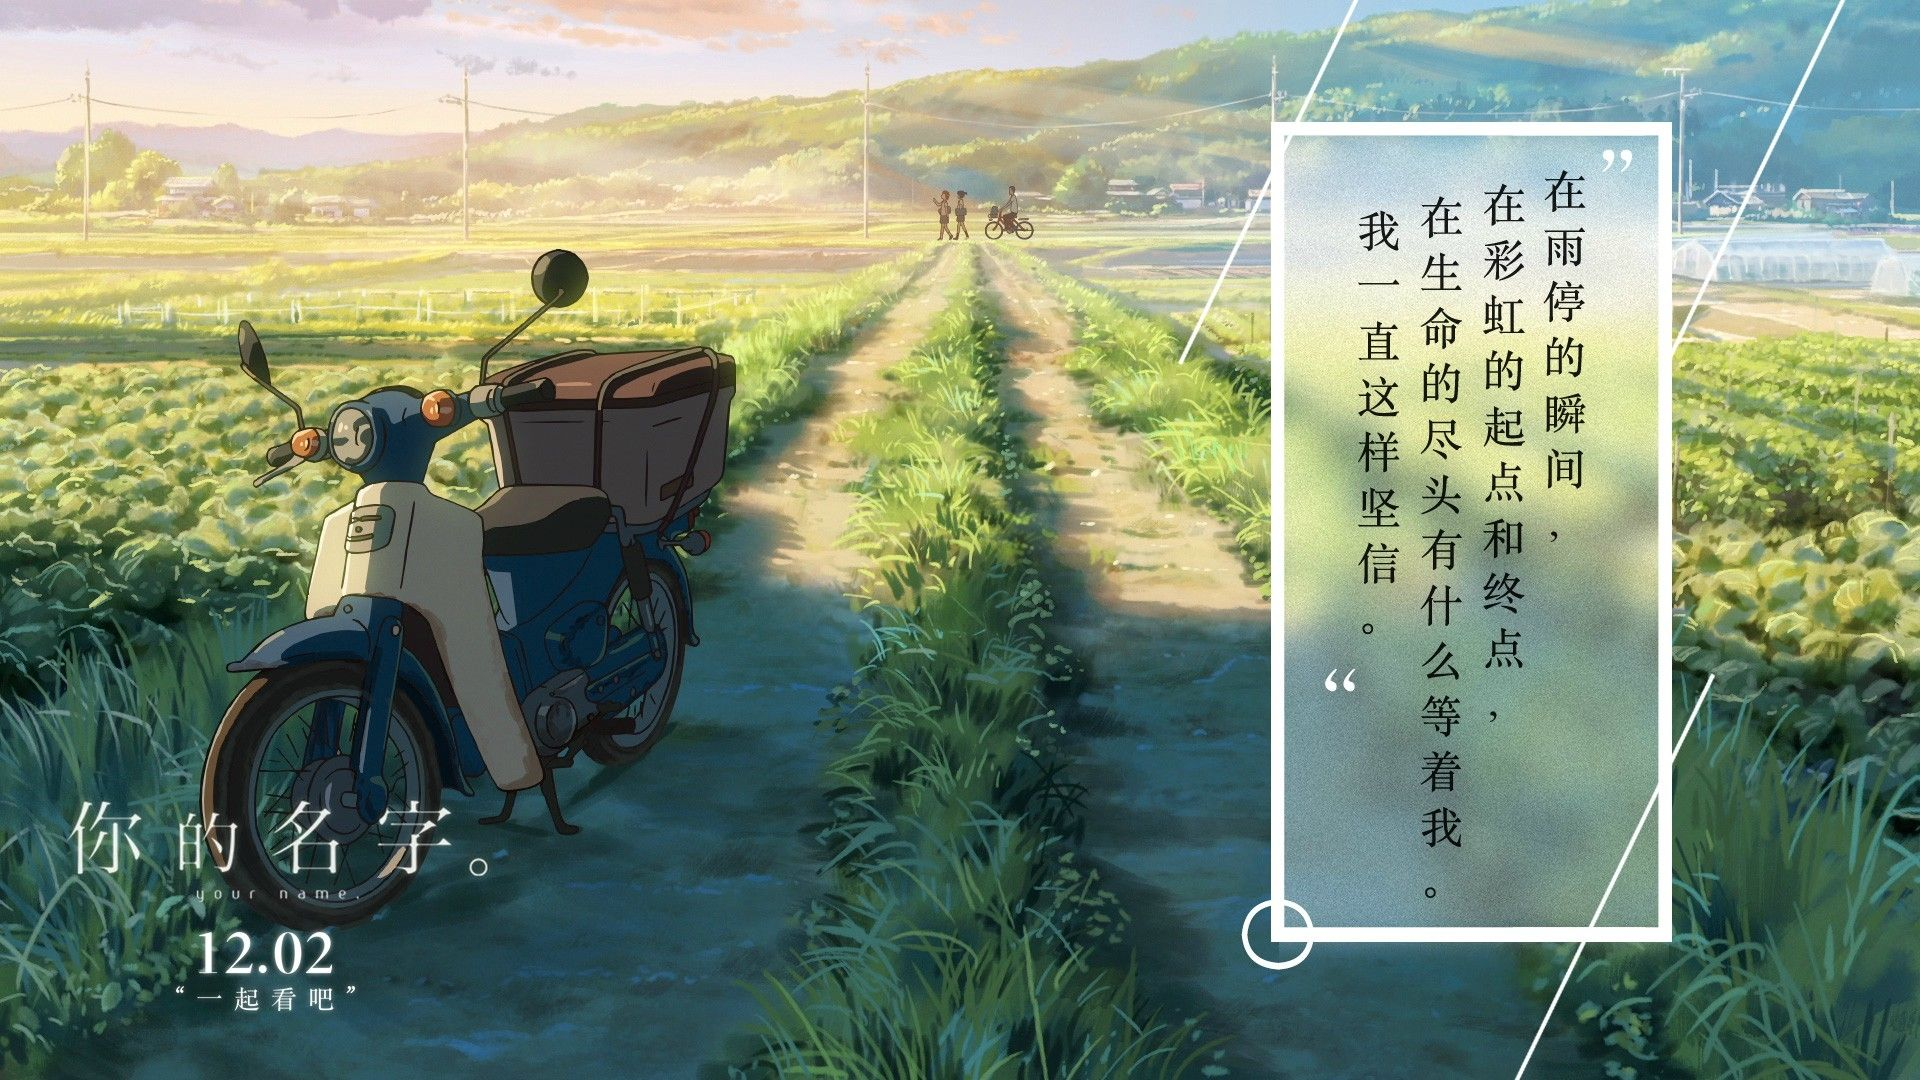 Anime Your Name - Your Name Anime Landscape , HD Wallpaper & Backgrounds